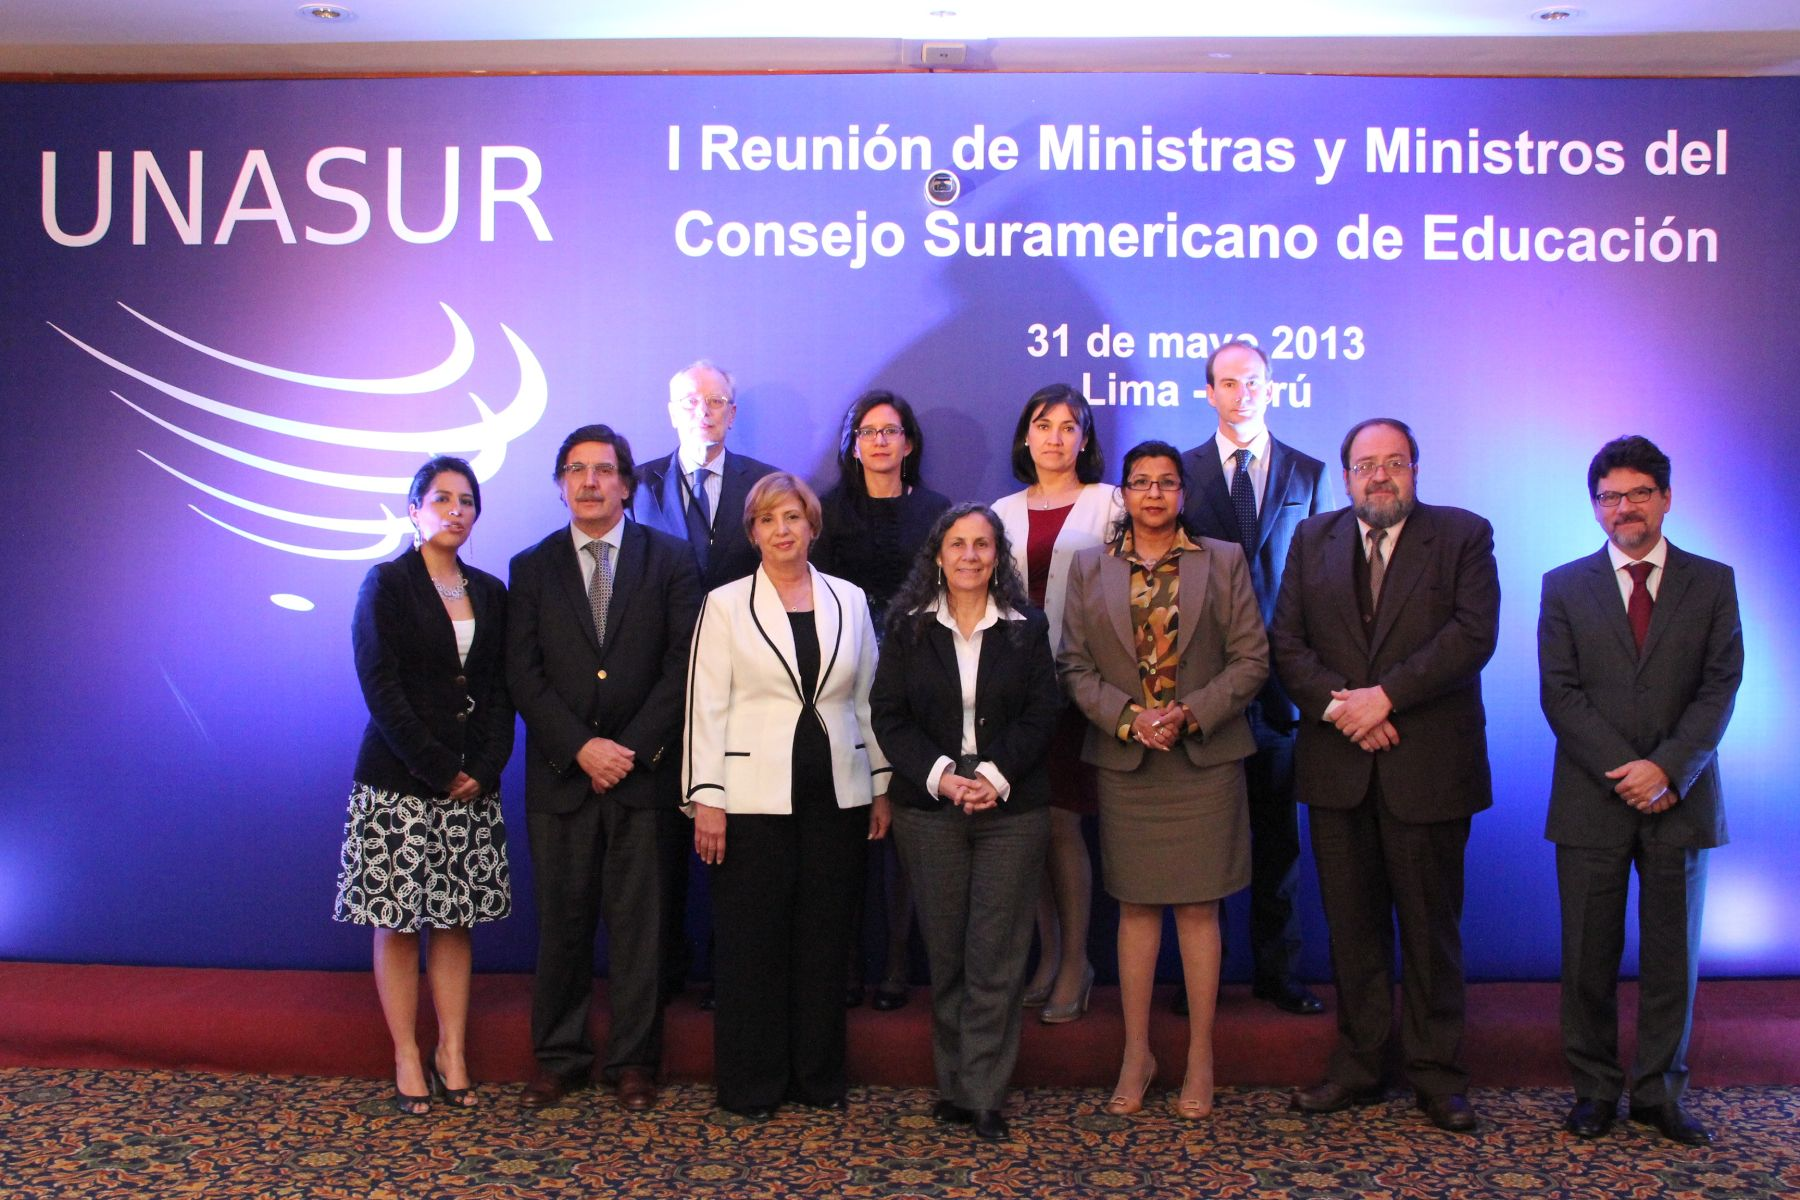 The First Meeting of the South American Culture Council takes place in Lima, Peru.